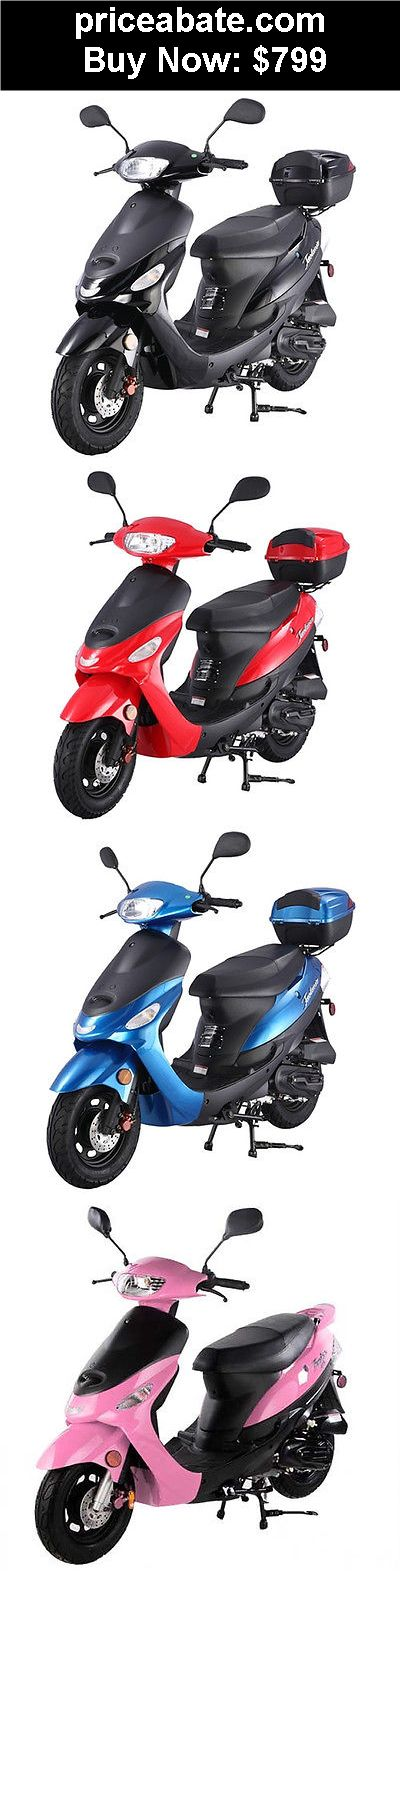 15 best scooter images on pinterest motor scooters vespas and woman power sports atvs utvs free shipping new 49cc moped gas scooter fandeluxe Choice Image